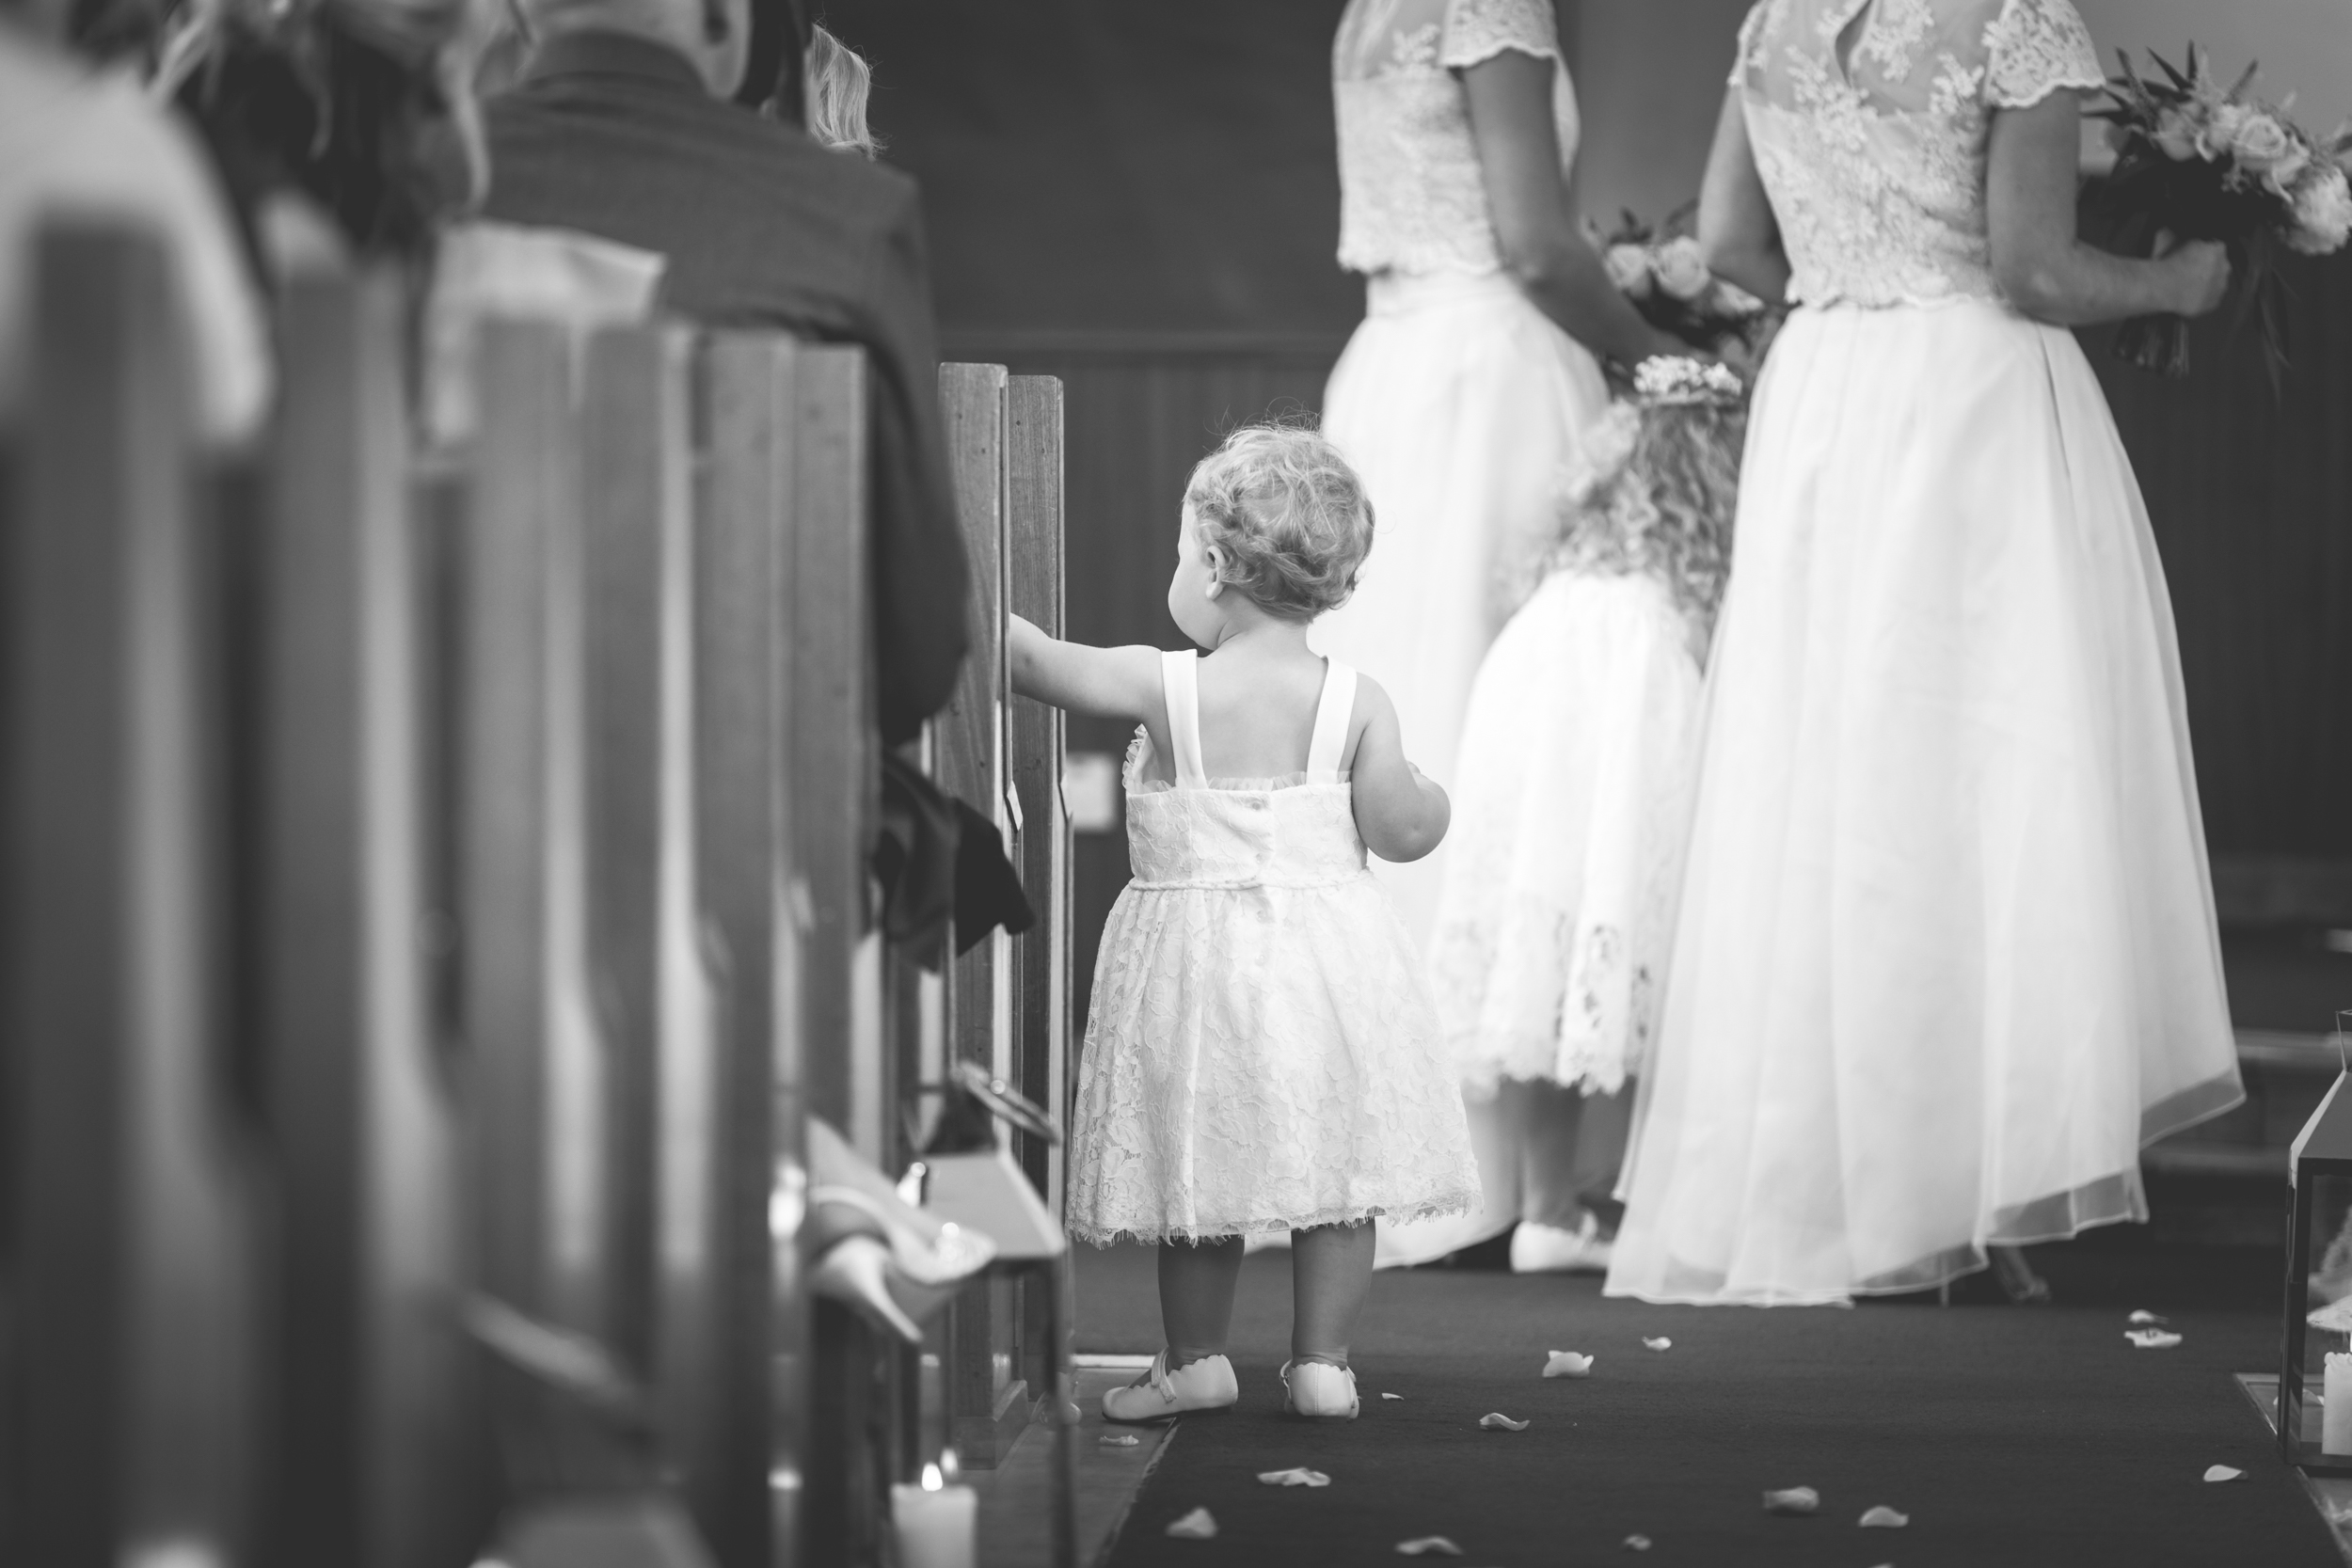 Brian McEwan | Northern Ireland Wedding Photographer | Rebecca & Michael | Ceremony-59.jpg